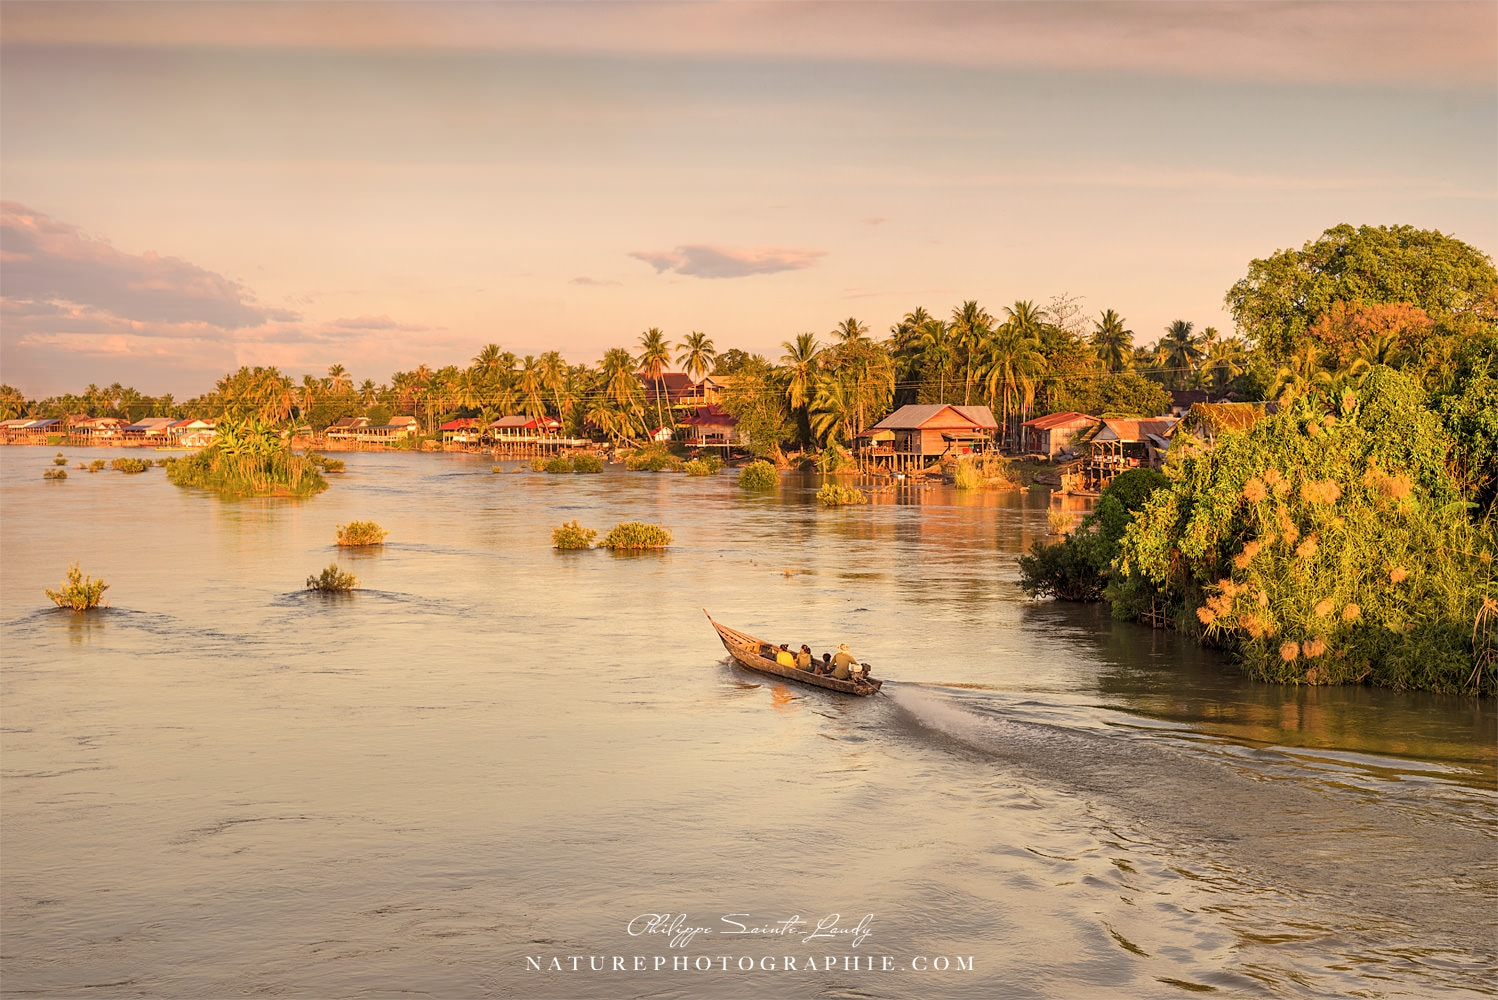 the Mekong at the End of the Day